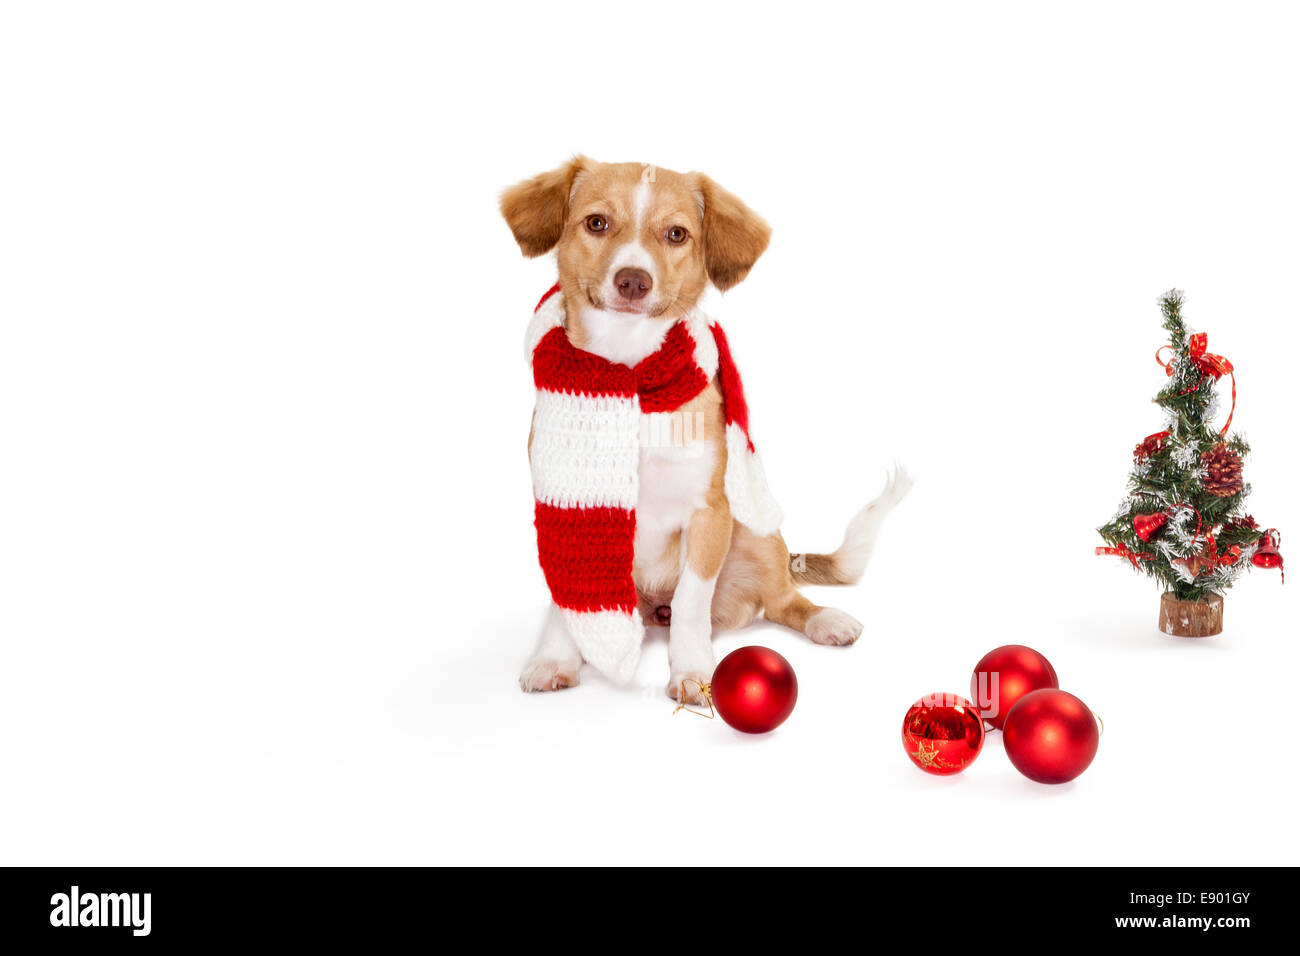 Portrait of cute dog wearing scarf beside christmas tree and baubles - Stock Image